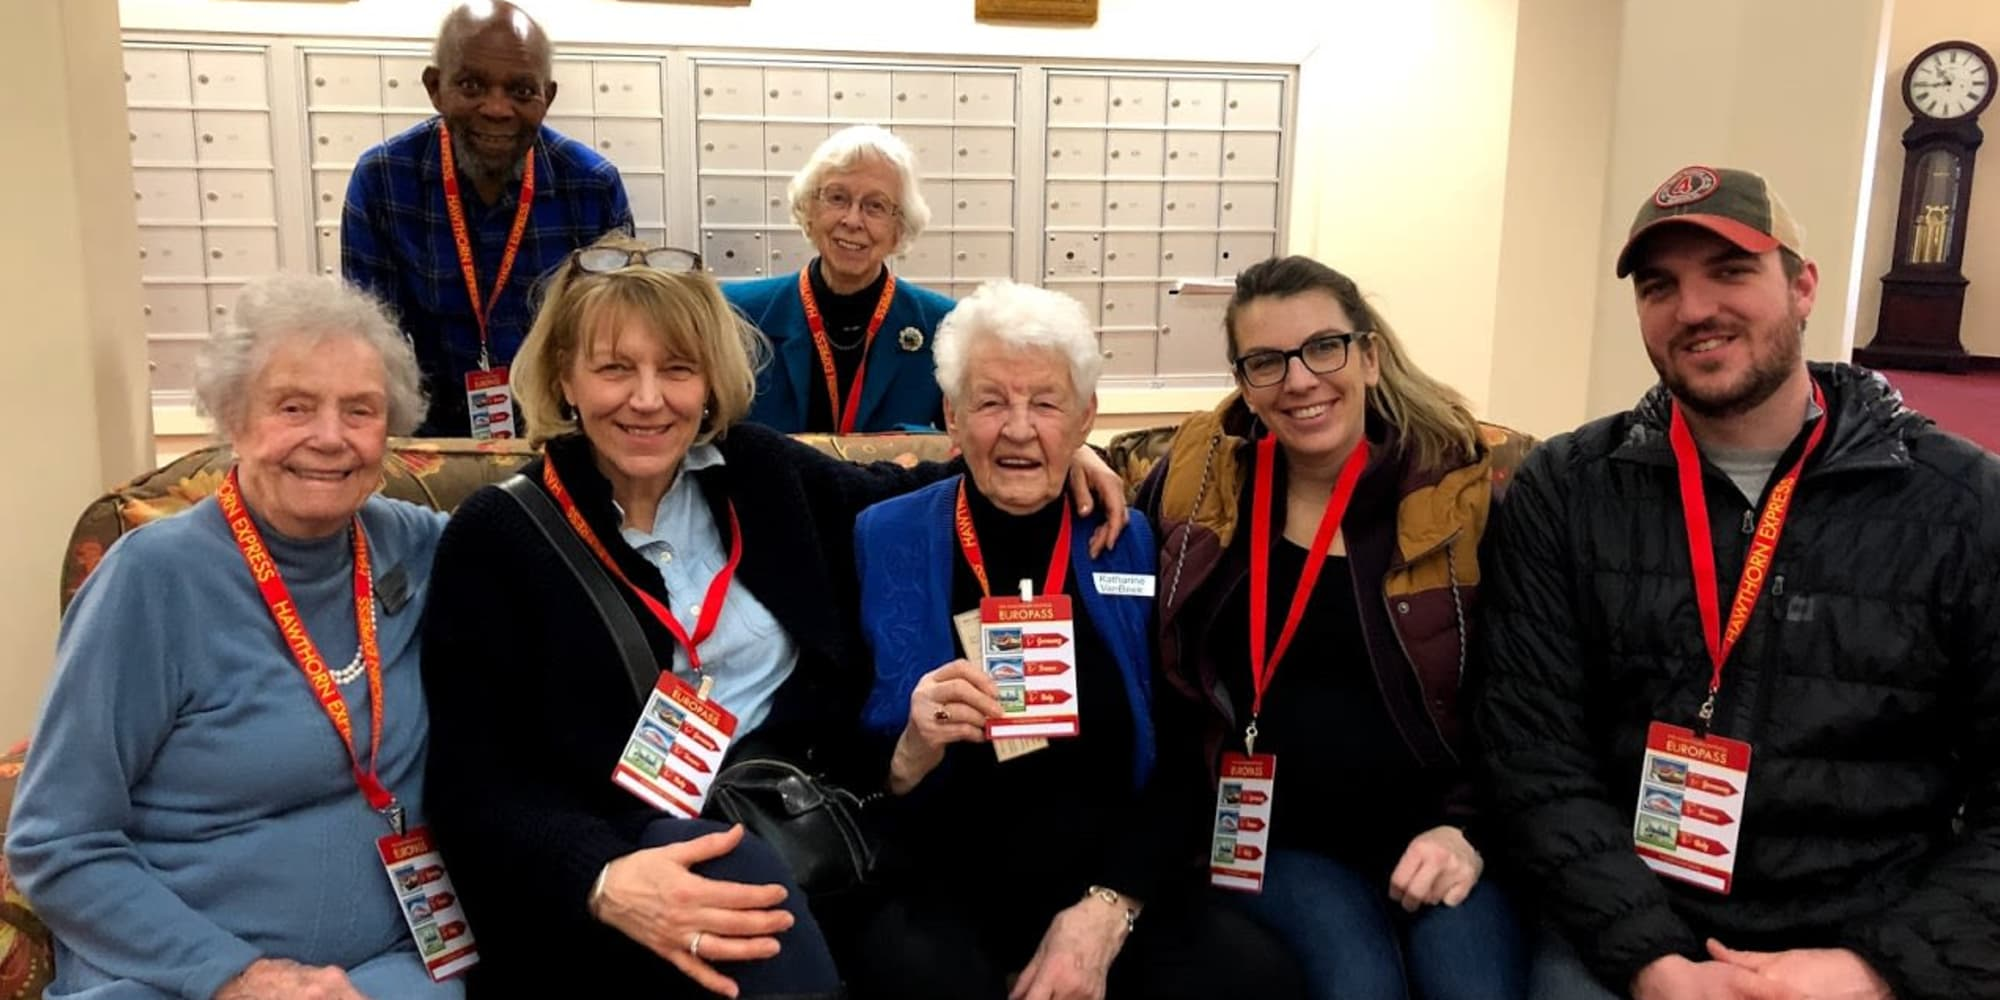 Residents with passes around their necks at Edgewood Point Assisted Living in Beaverton, Oregon